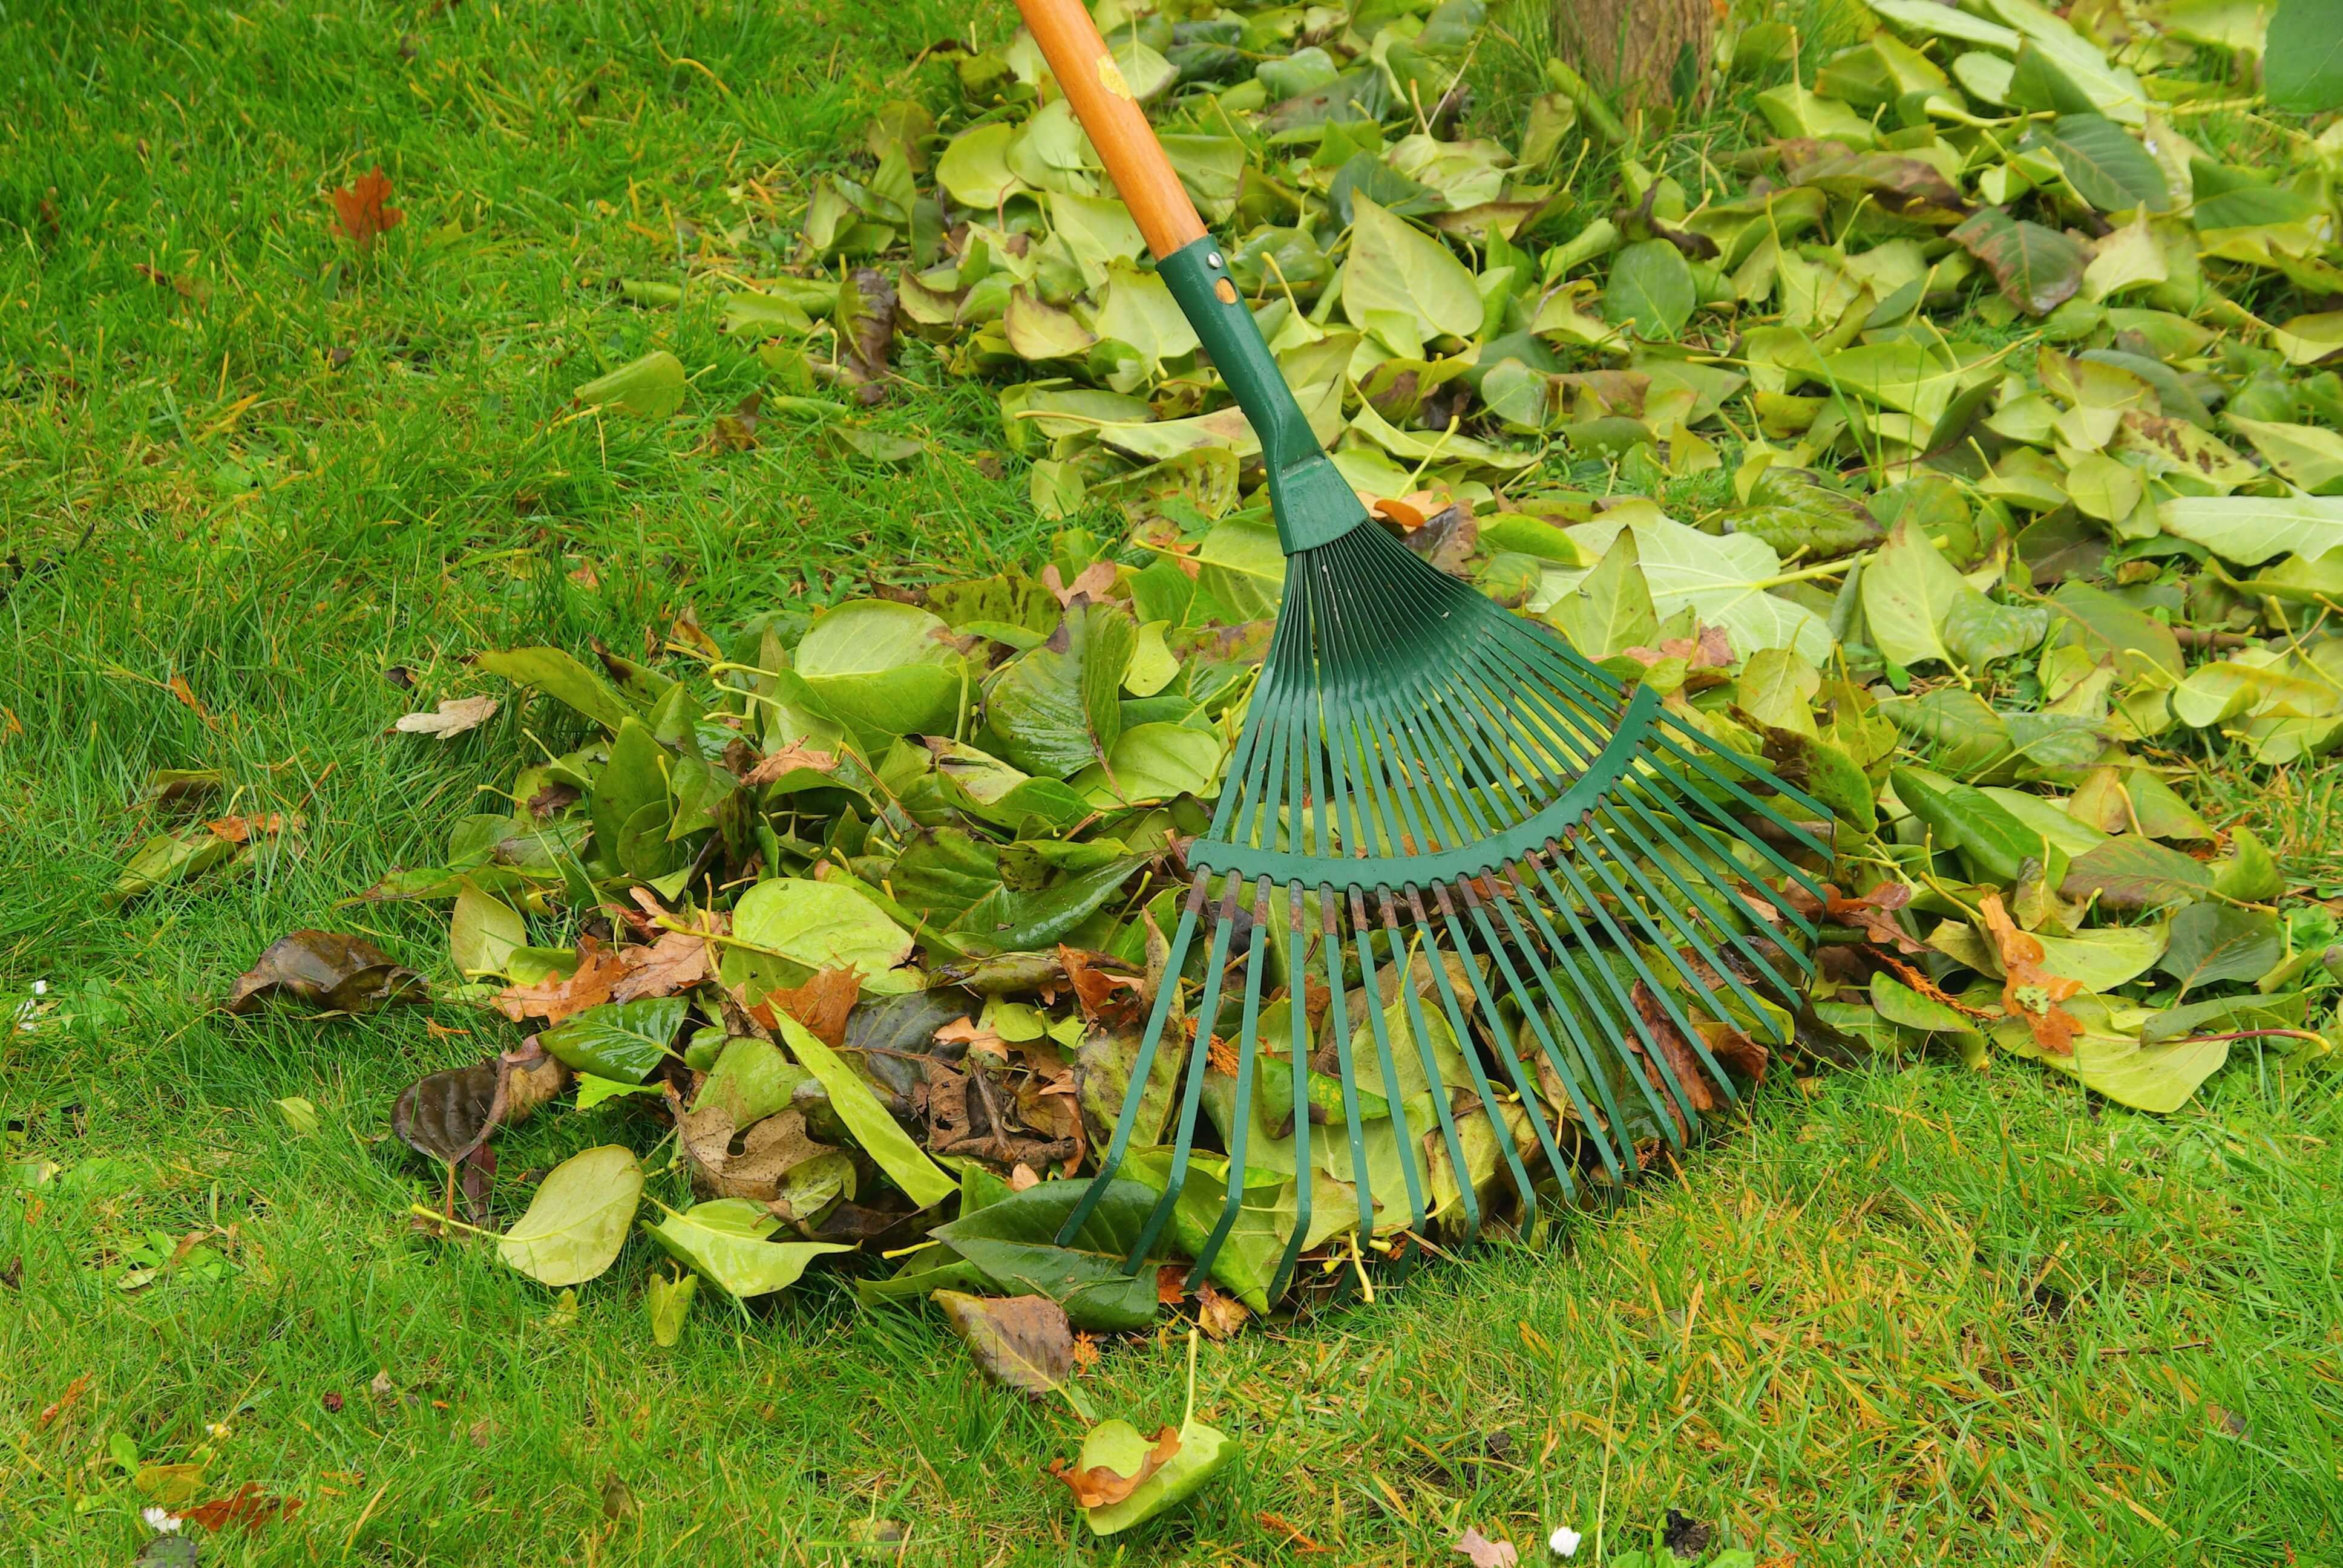 Back to the basics: lawn care 101